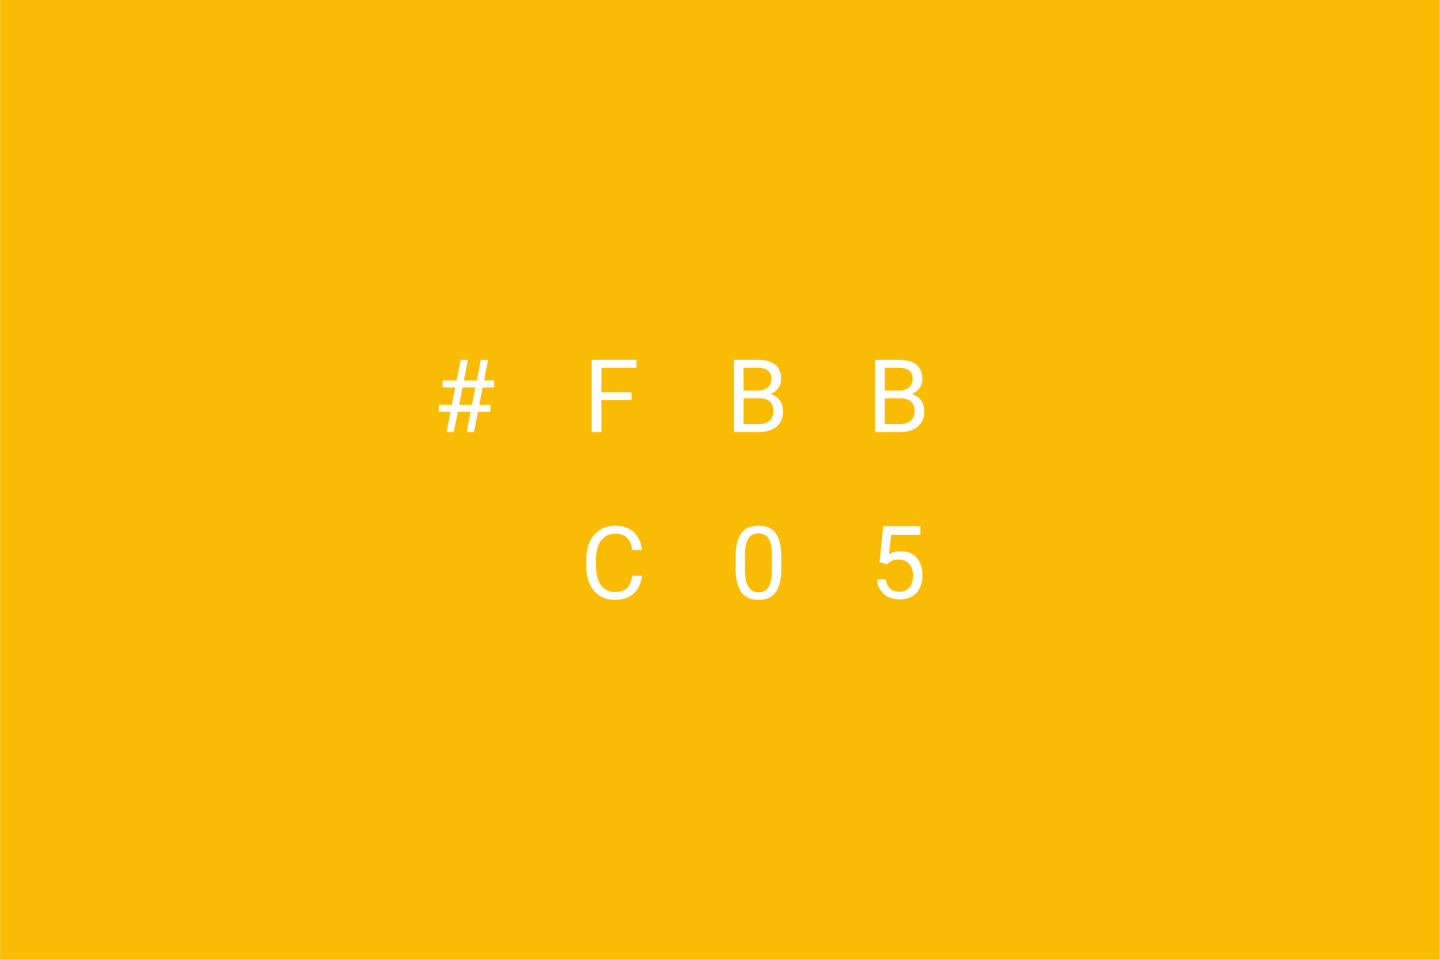 Google Brand Colors - Yellow